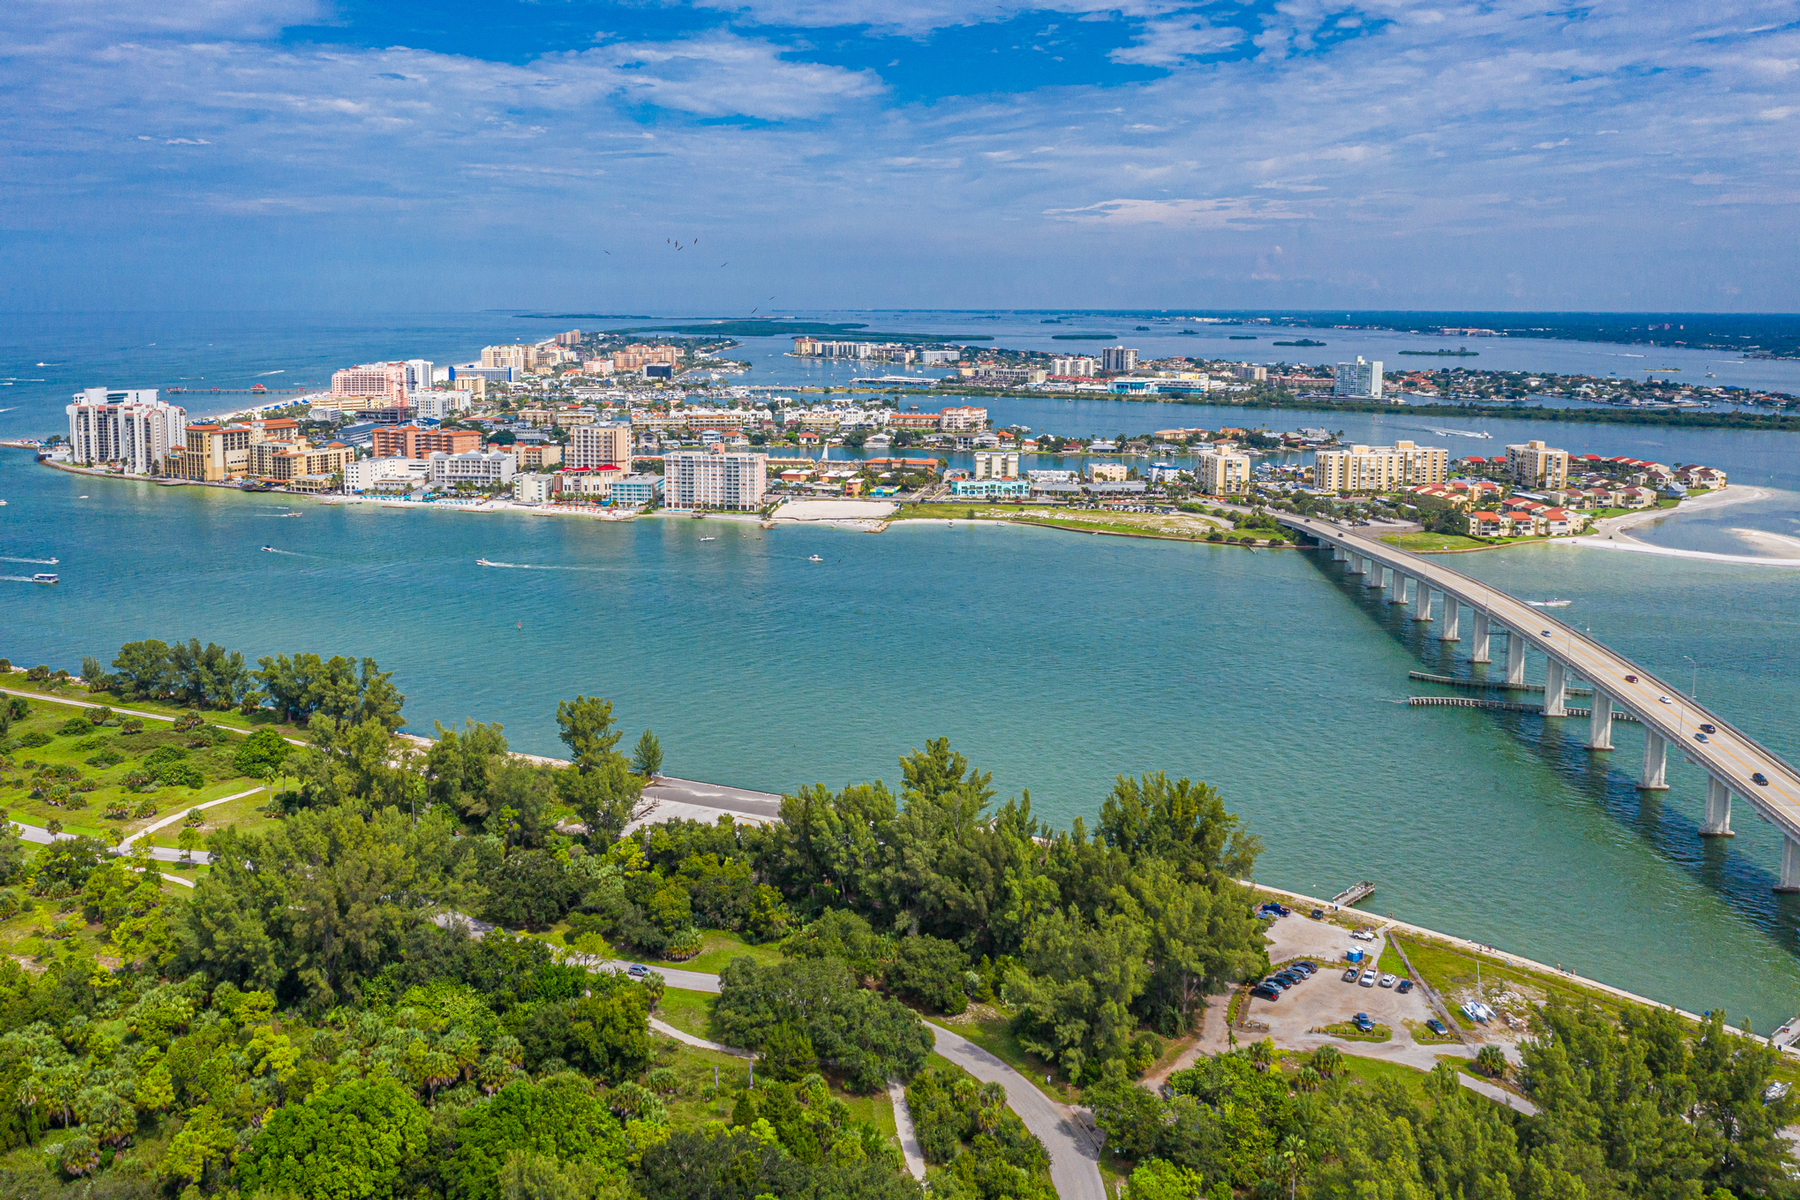 Drone angle view of Clearwater Beach and Bridge.